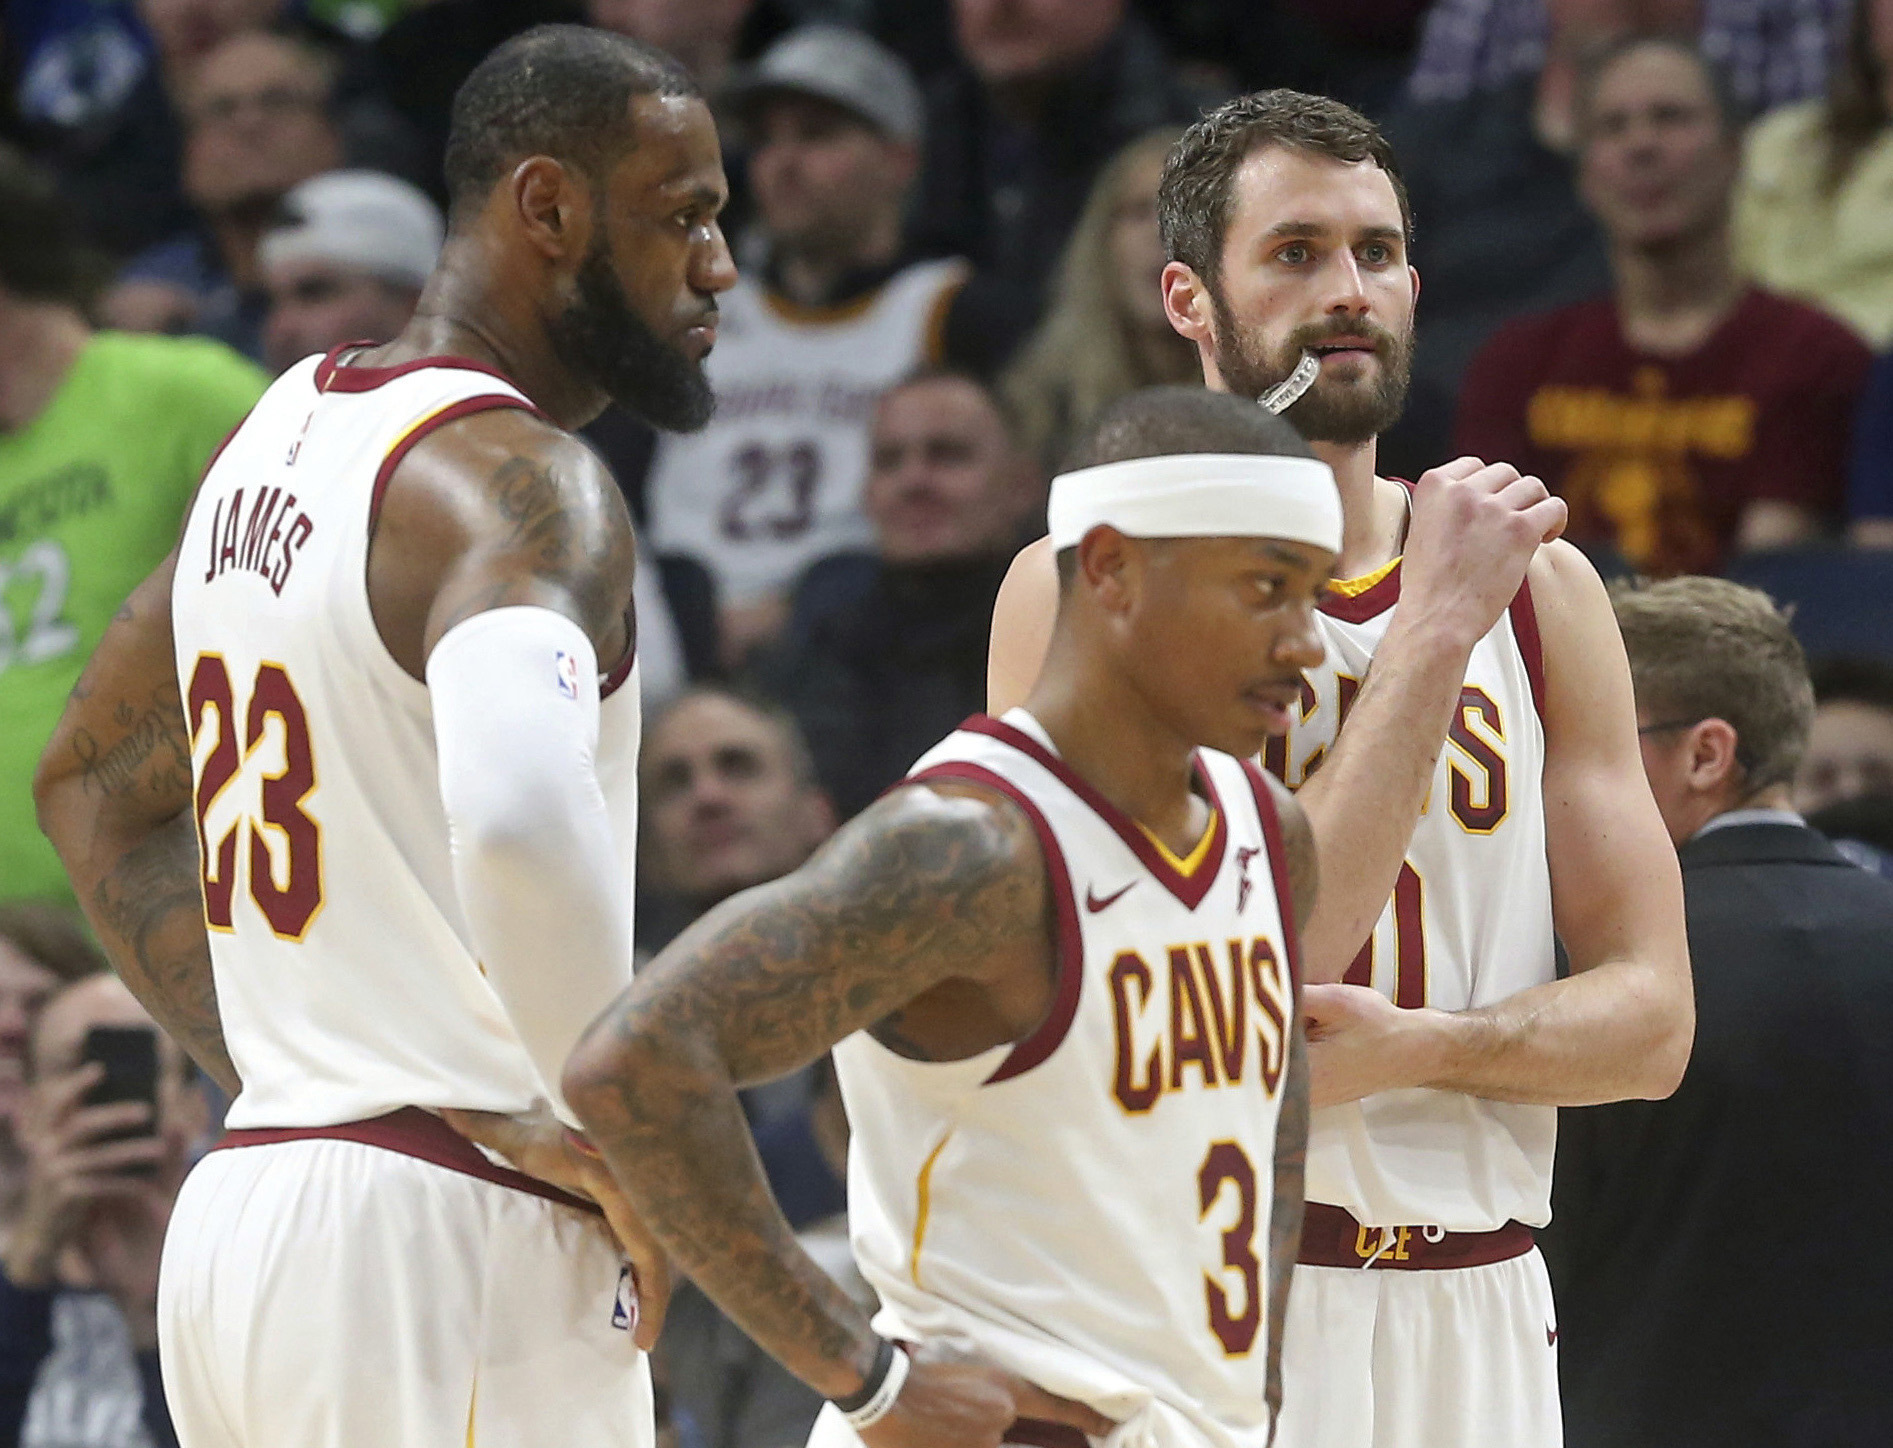 Cavs Must Figure Out Roles